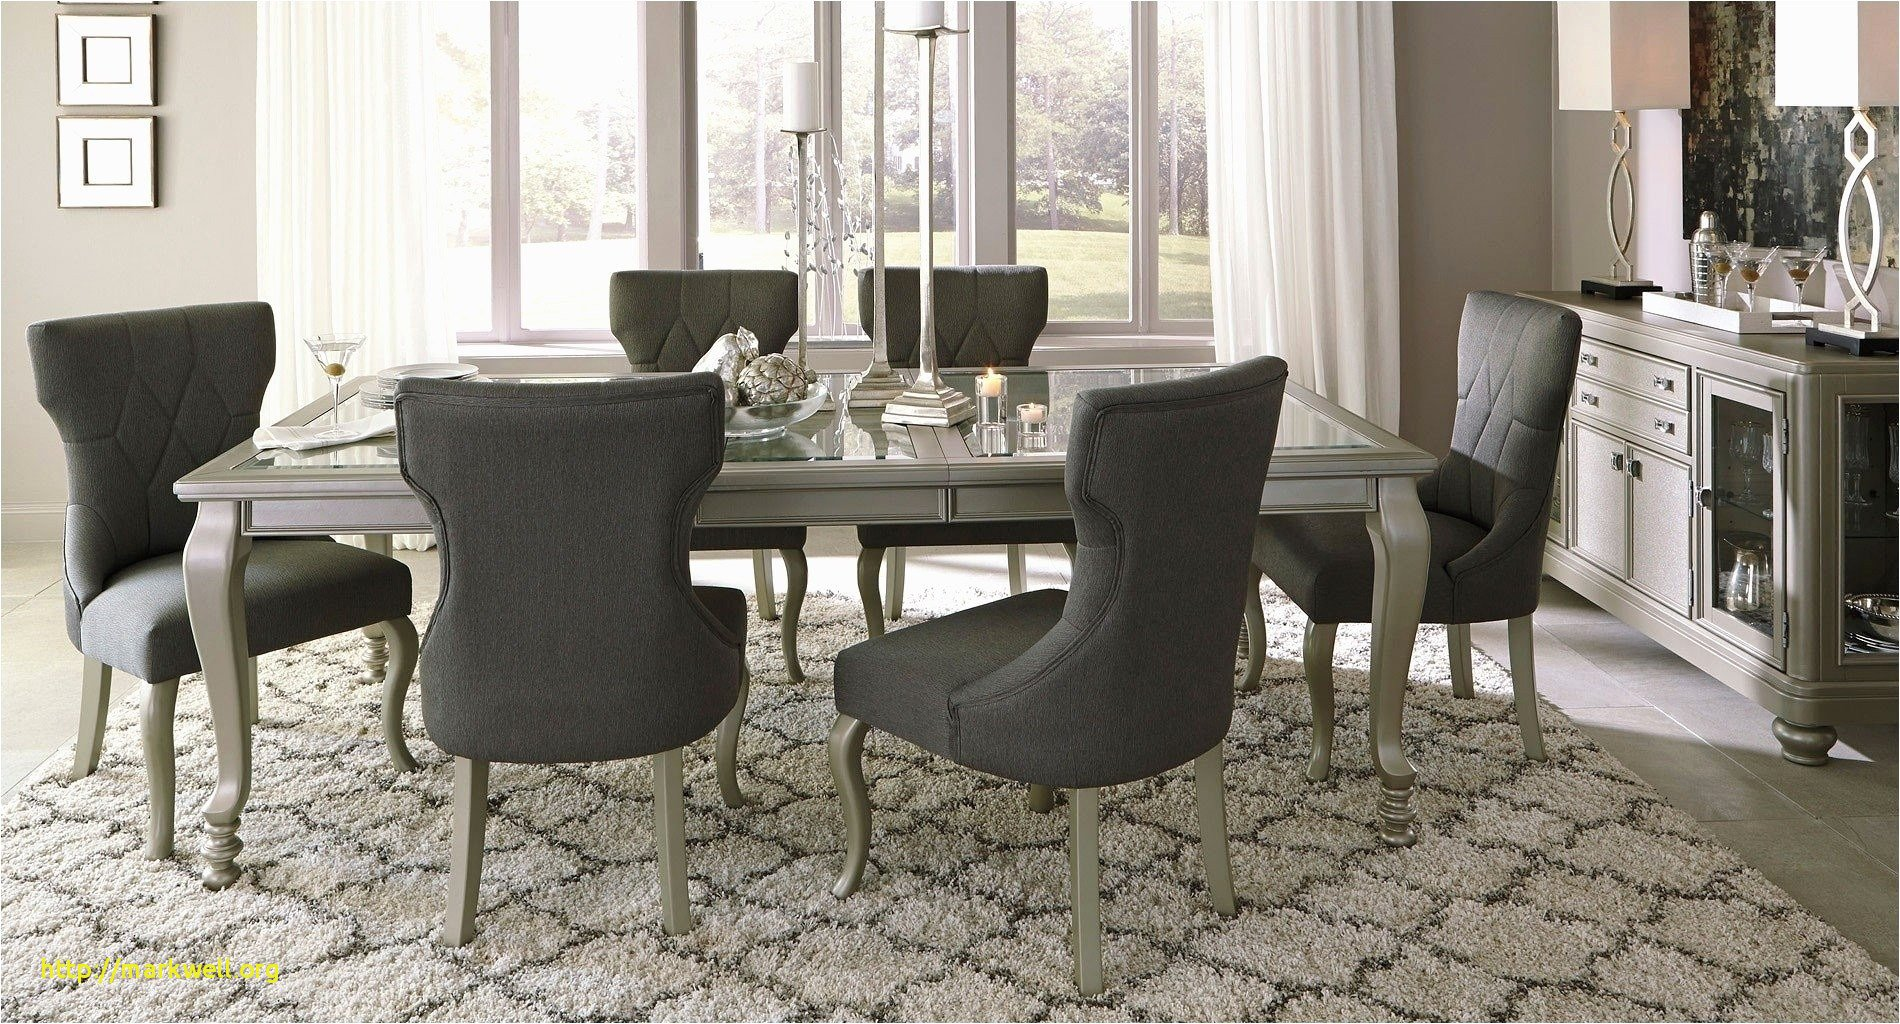 Ashley Home Store Bedroom Set Inspirational Luxury Side Chairs for Bedroom